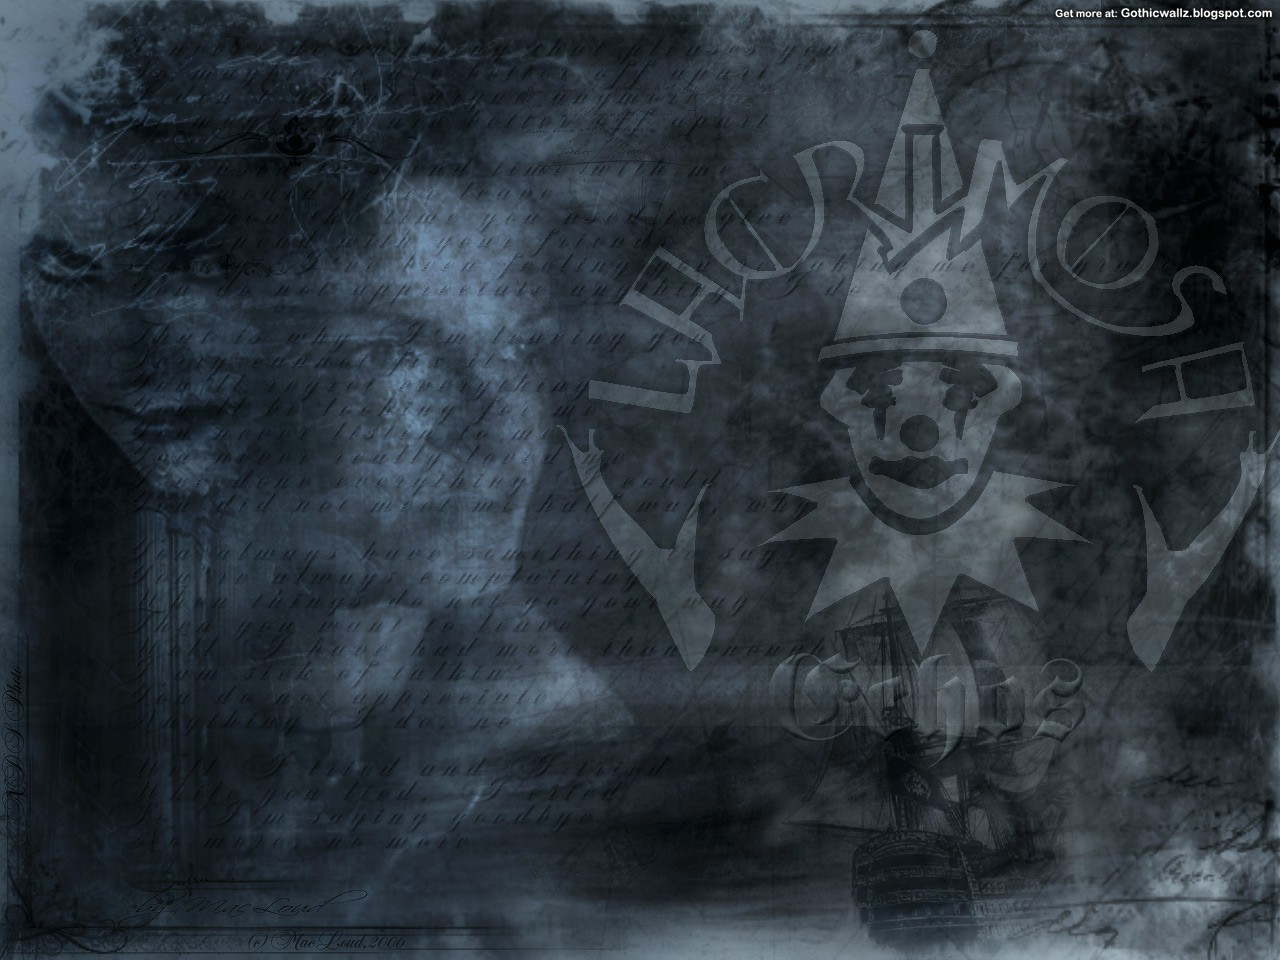 Gothic Wallpapers: Lacrimosa